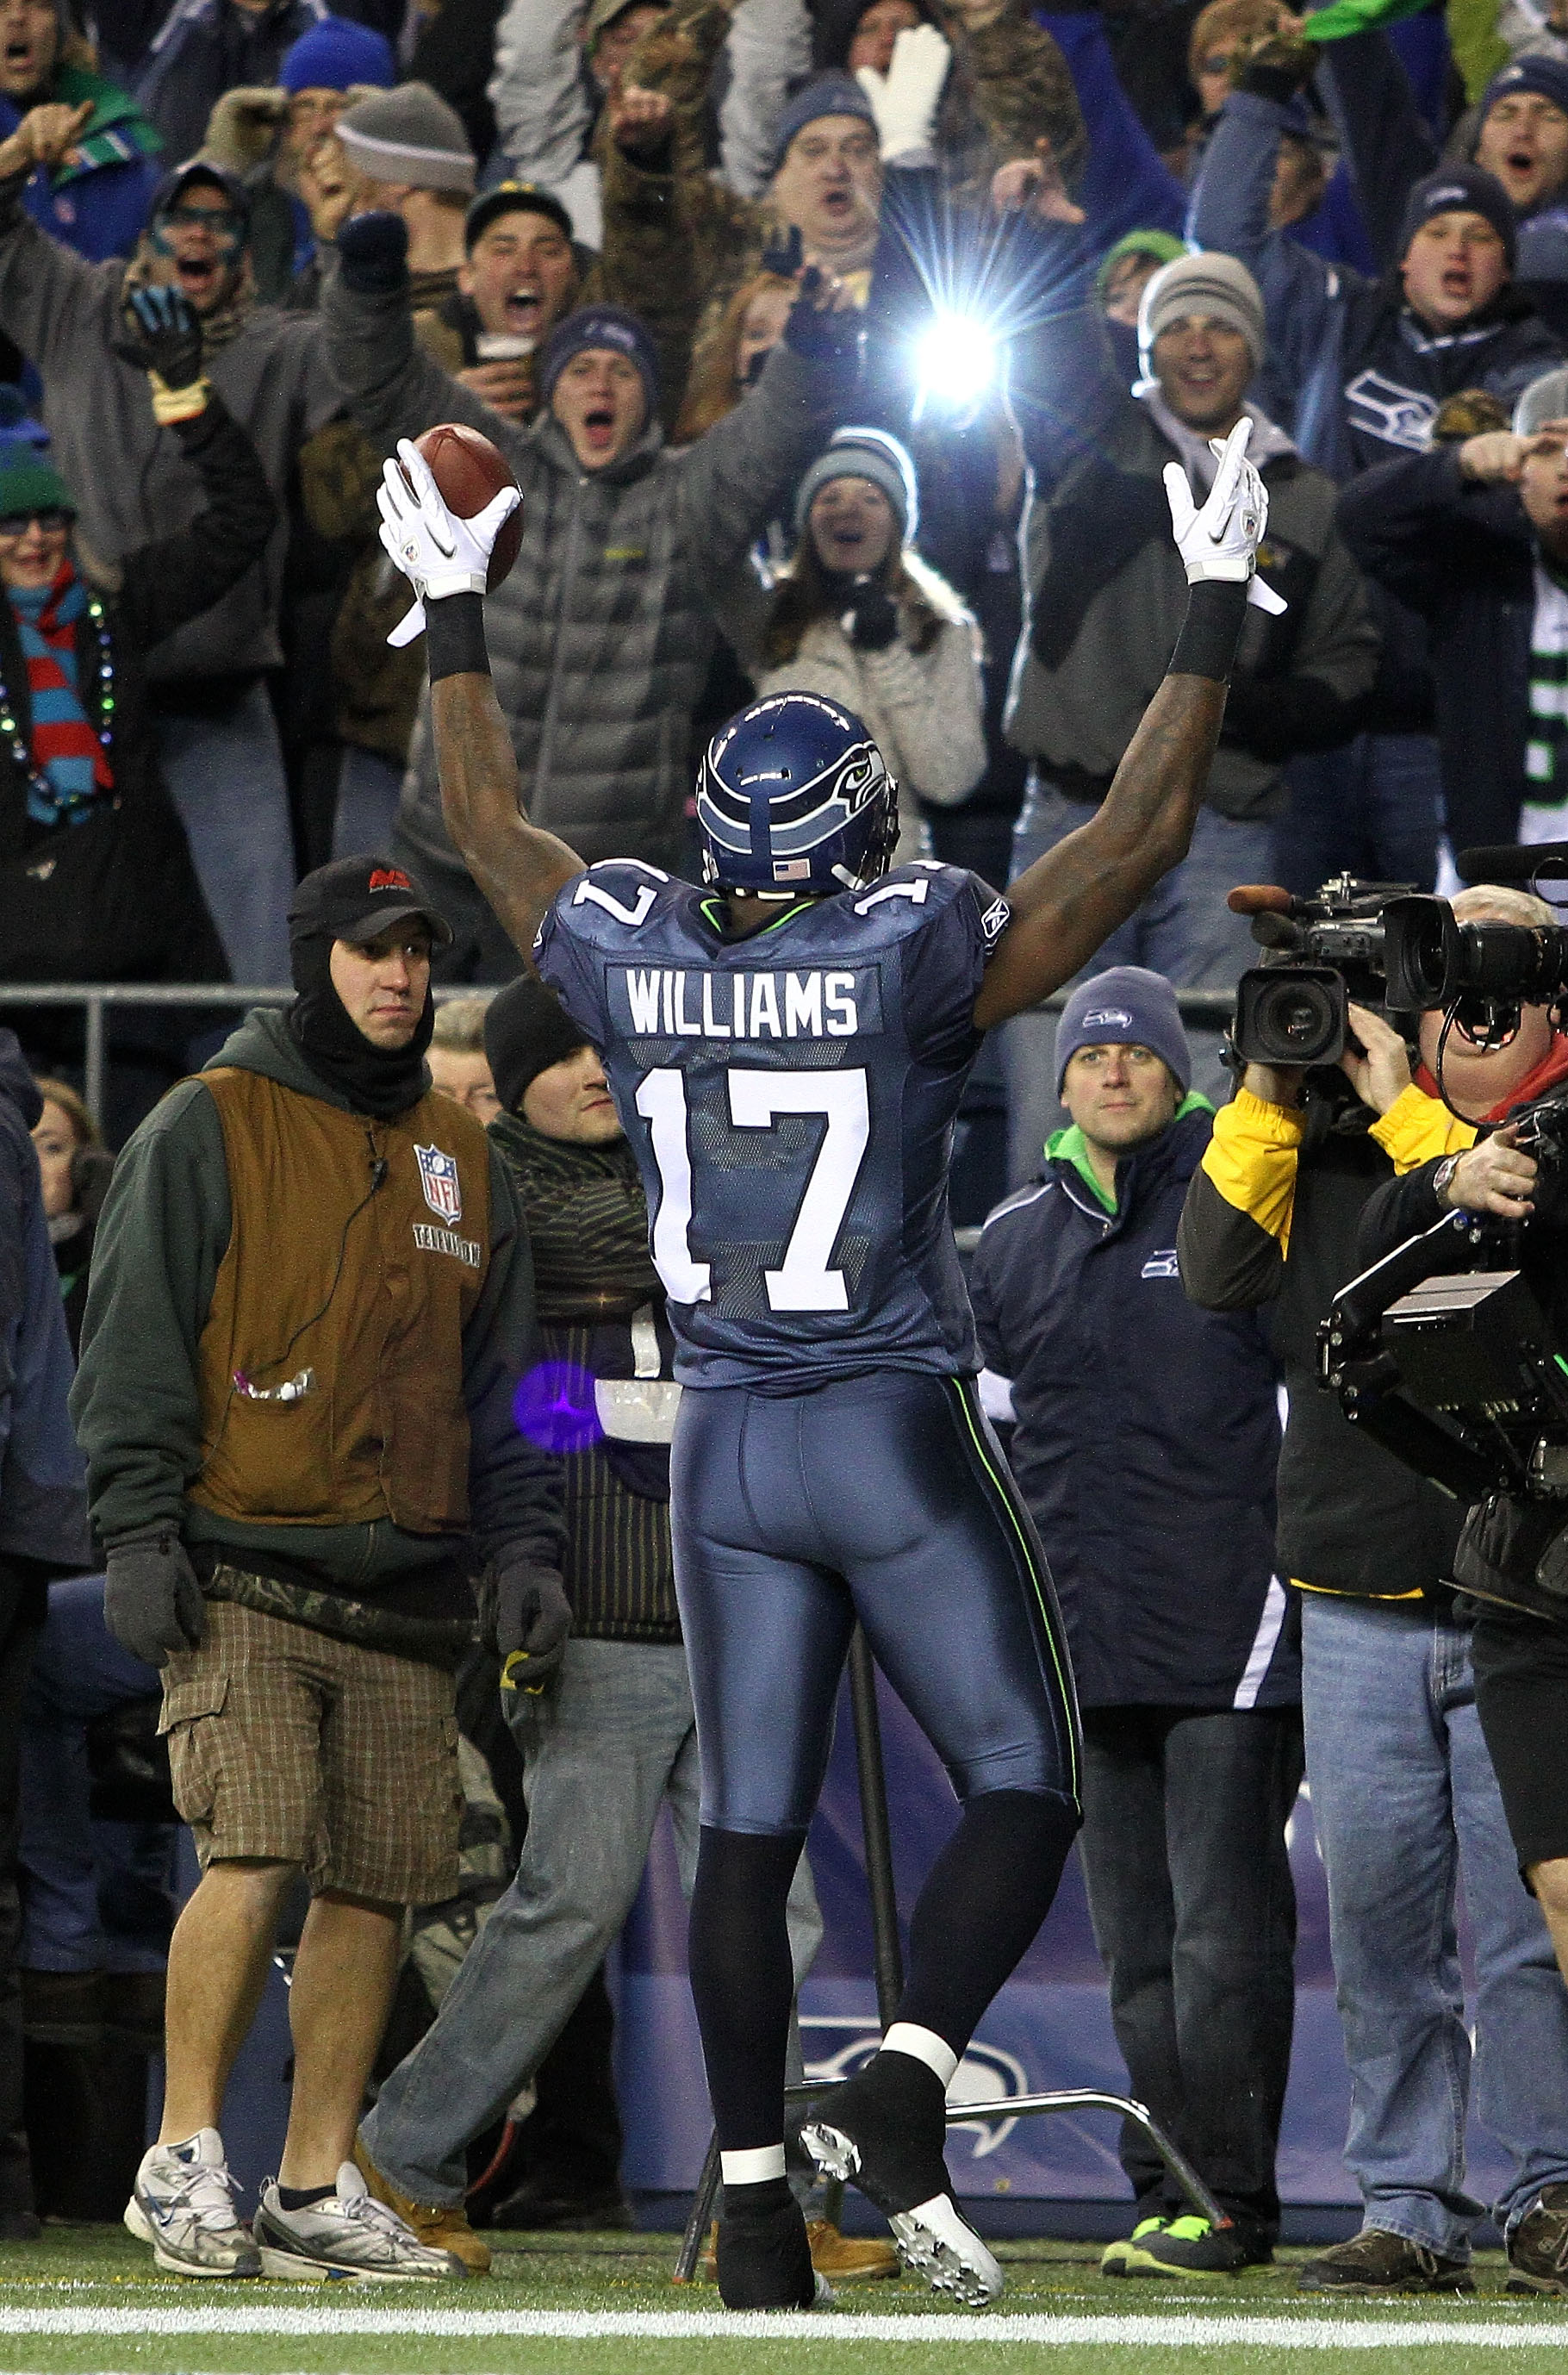 SEATTLE, WA - JANUARY 02:  Wide receiver Mike Williams #17 of the Seattle Seahawks celebrates scoring a touchdown in the first quarter against the St. Louis Rams during their game at Qwest Field on January 2, 2011 in Seattle, Washington.  (Photo by Otto G